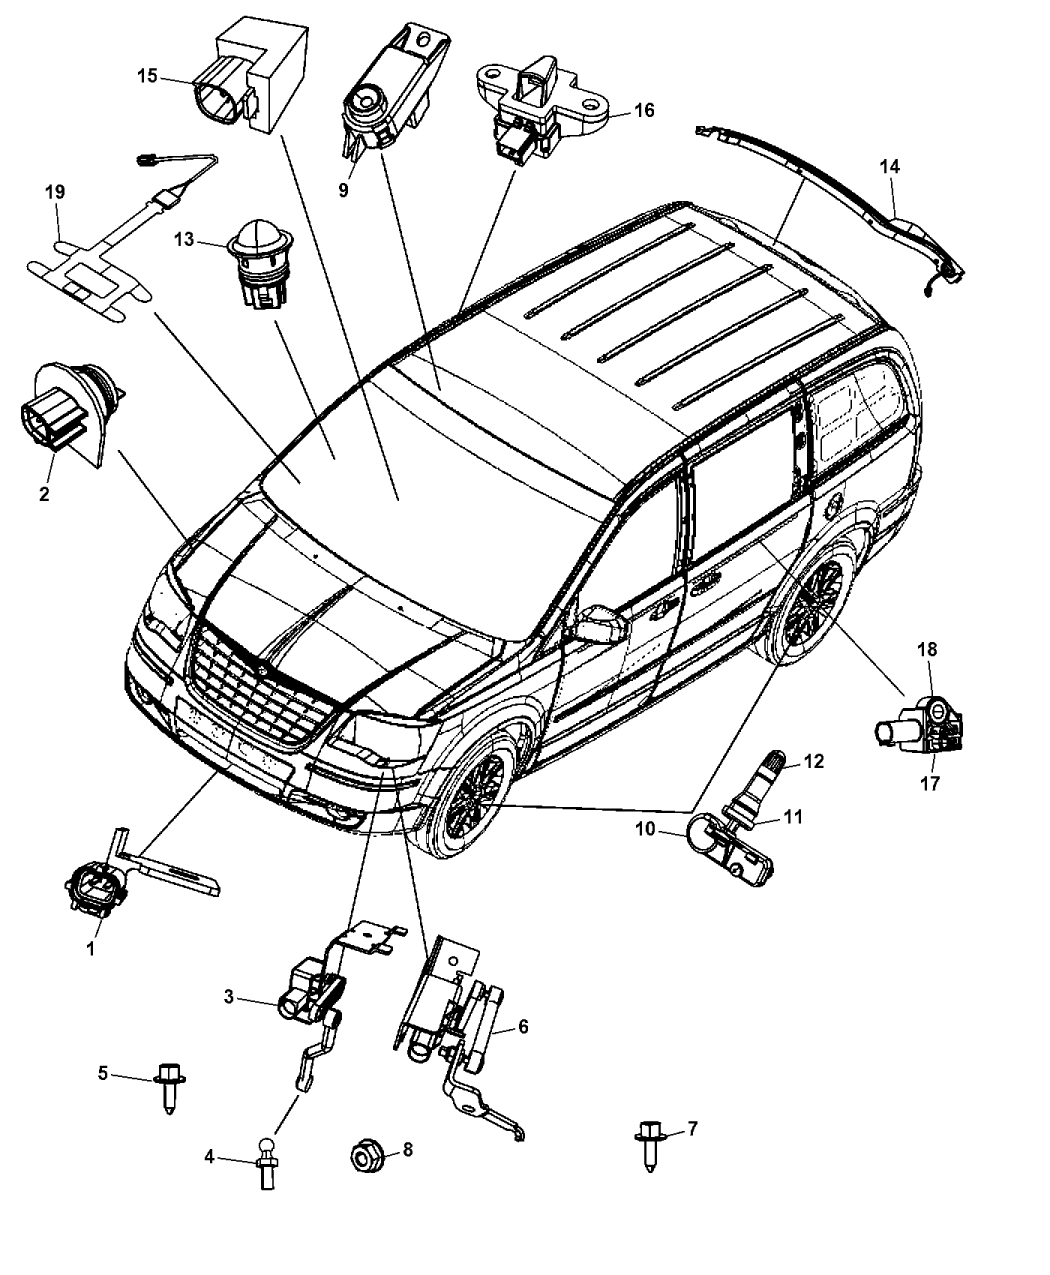 2003 Dodge Grand Caravan Radio Wiring Diagram Auto Electrical 2012 Trailer Related With